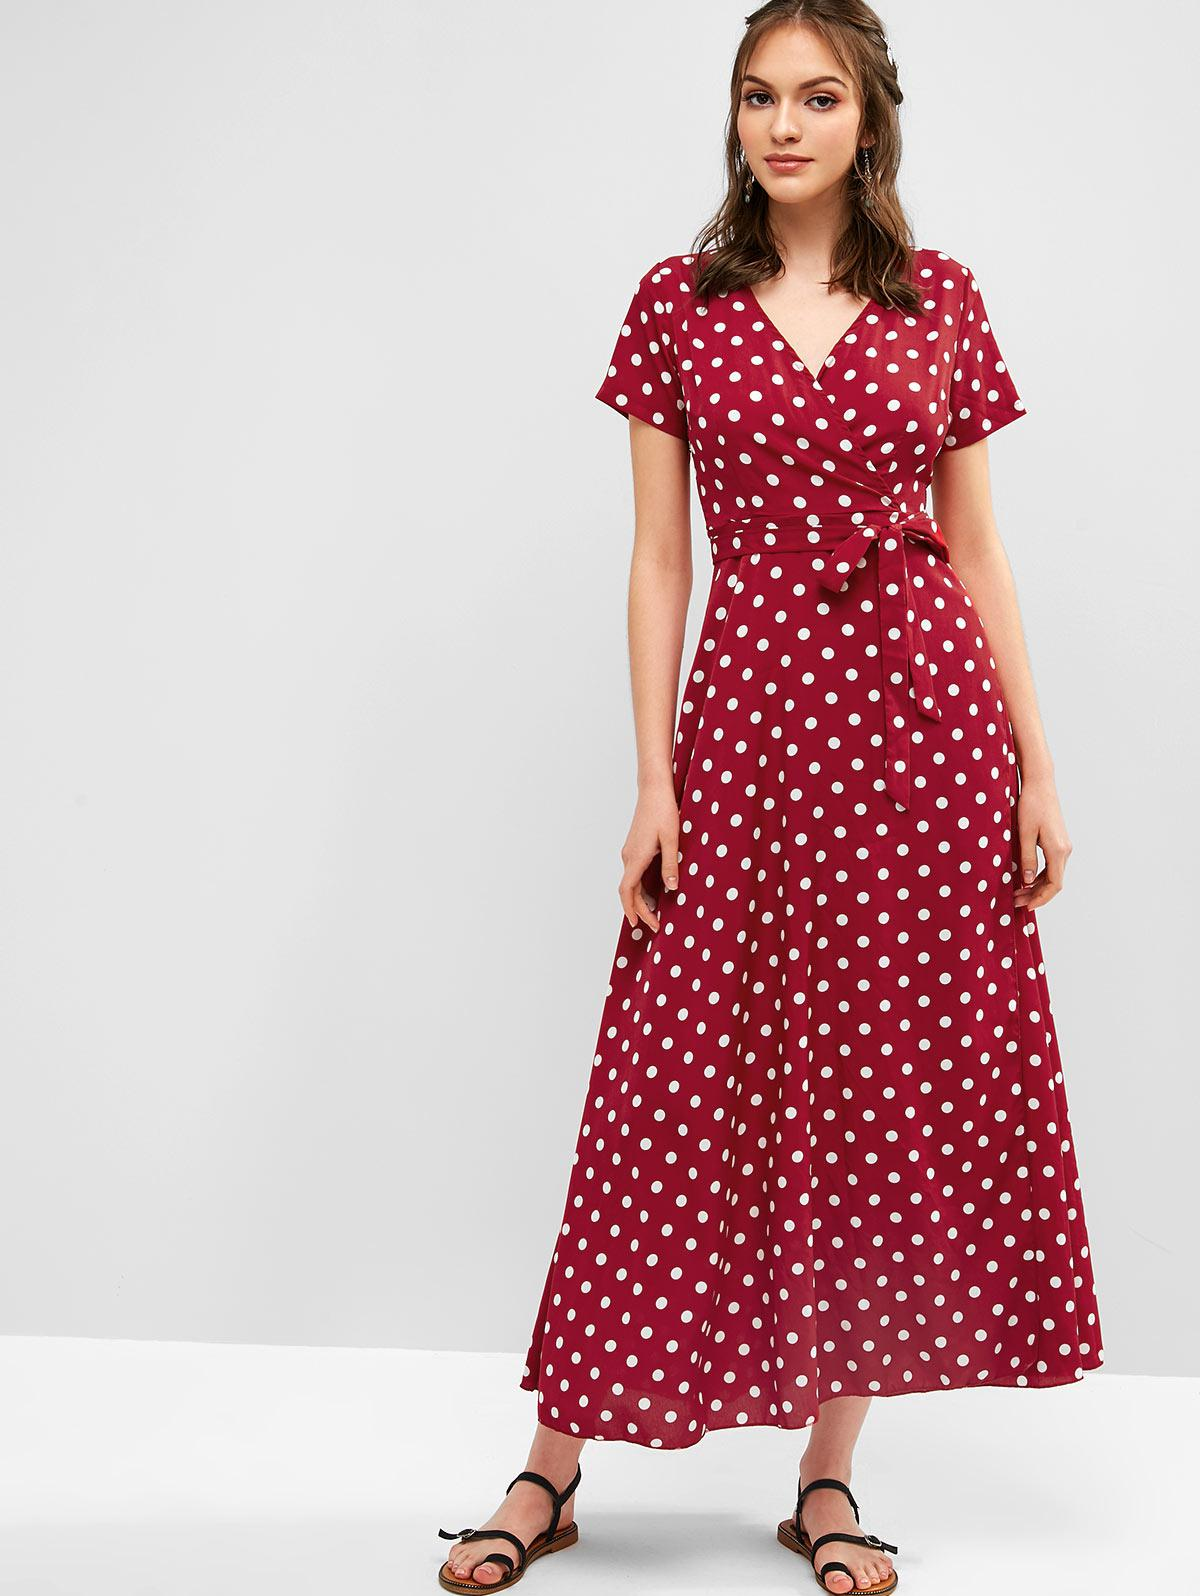 48 Off 2020 Slit Belted Surplice Polka Dot Maxi Dress In Red